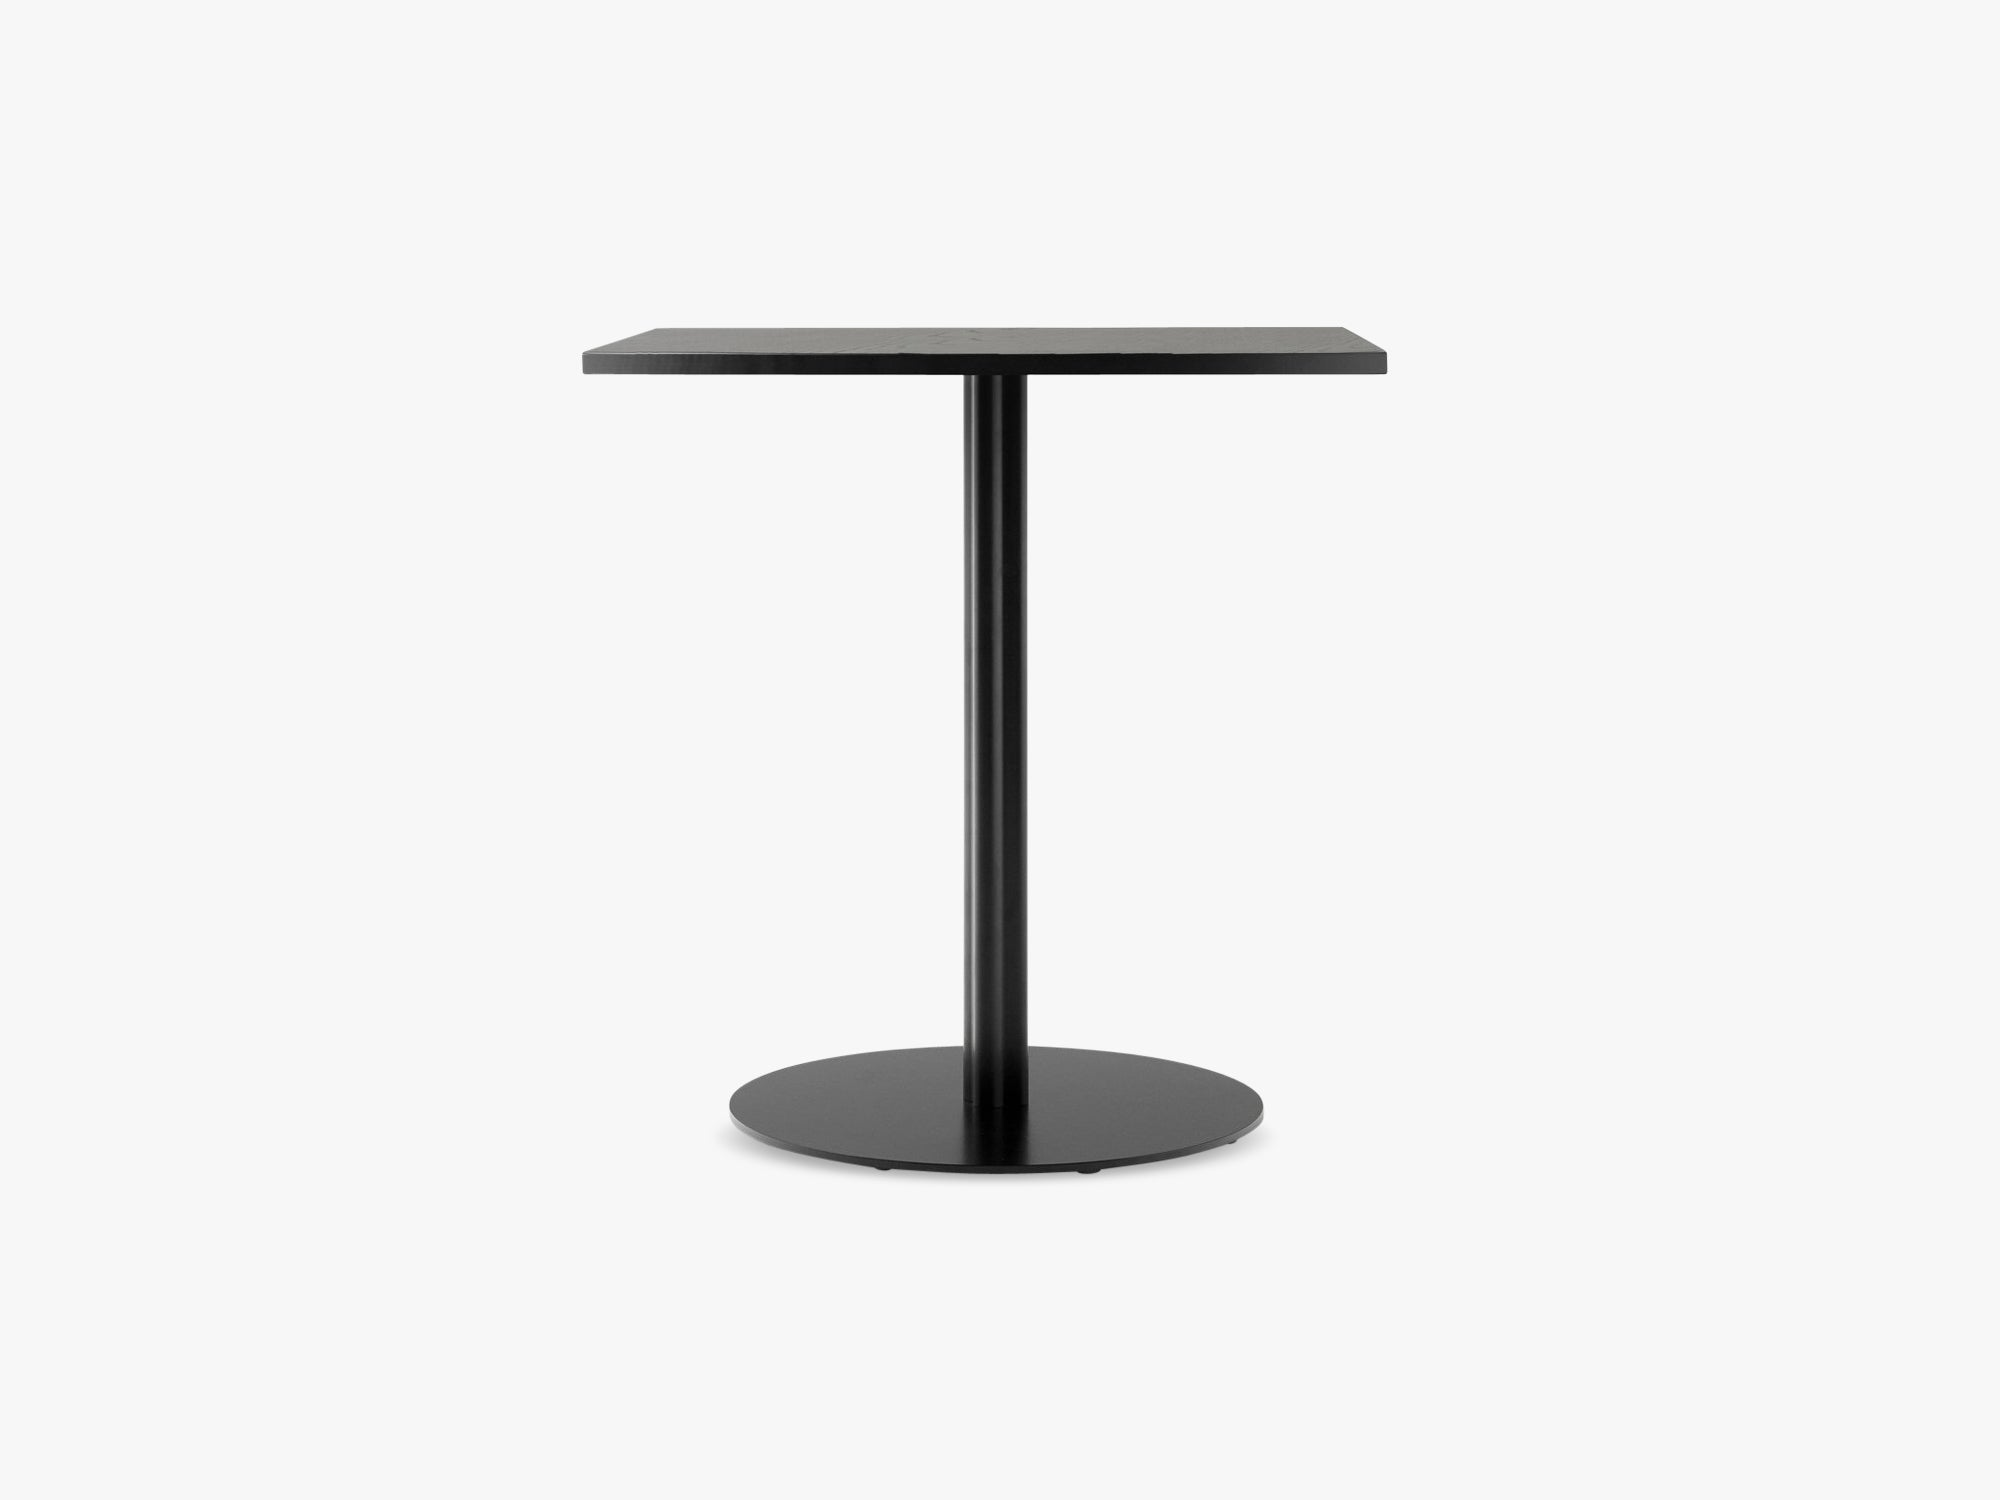 Harbour Column Dining Table 60x70 - Black Painted Oak Veneer with Black Base fra Menu